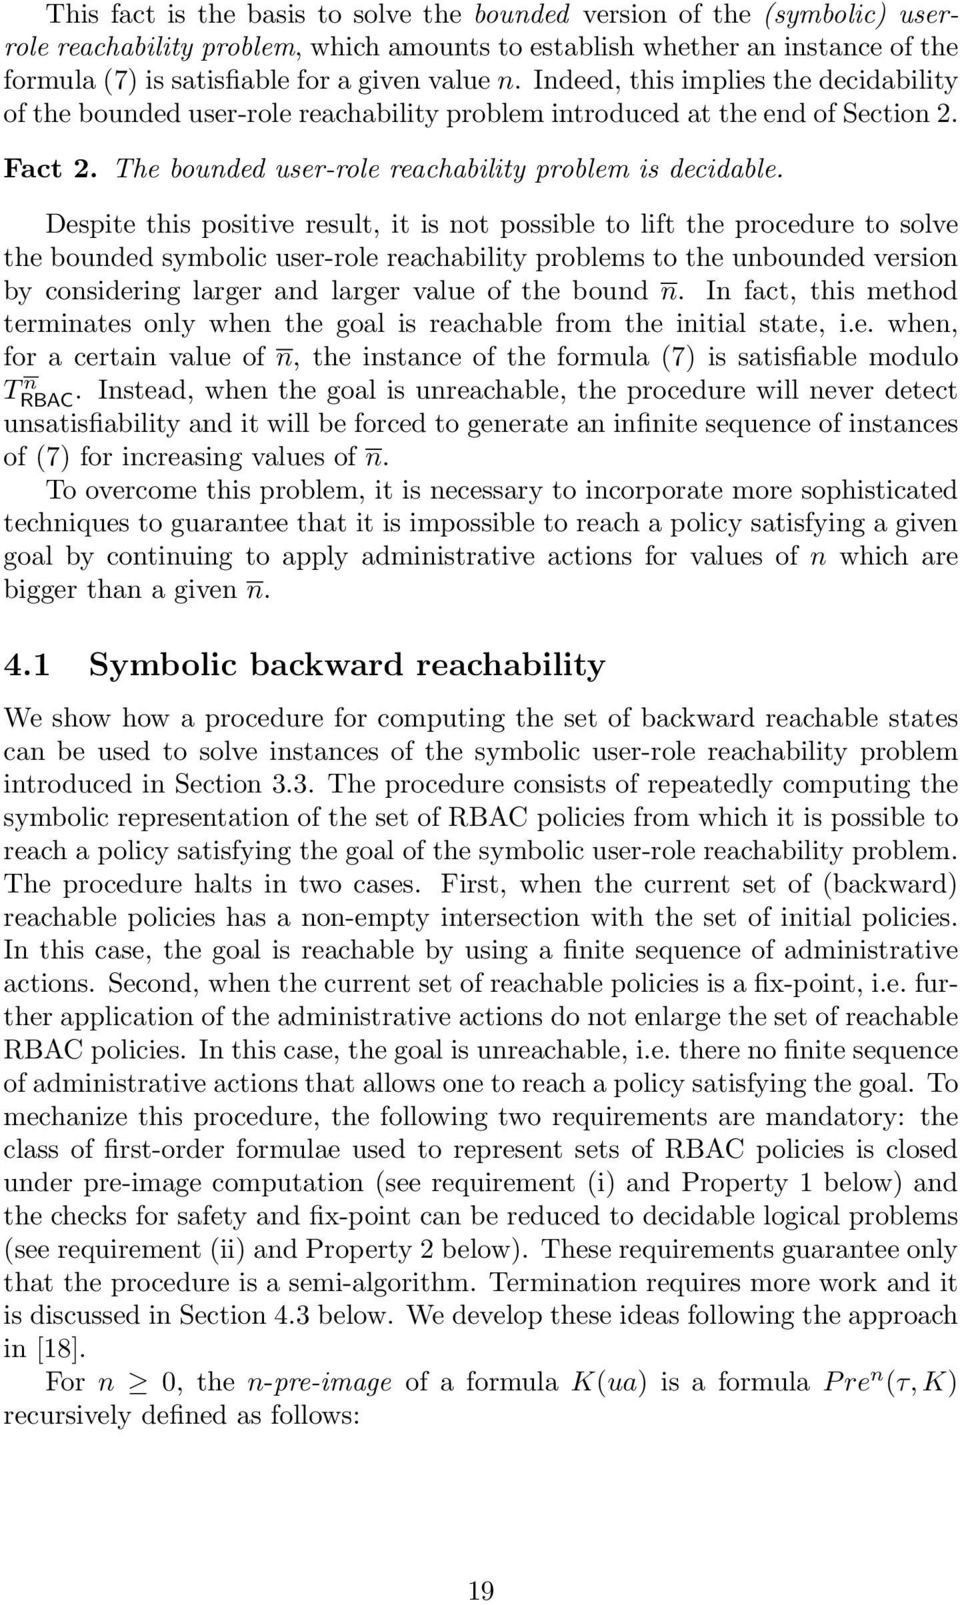 Despite this positive result, it is not possible to lift the procedure to solve the bounded symbolic user-role reachability problems to the unbounded version by considering larger and larger value of